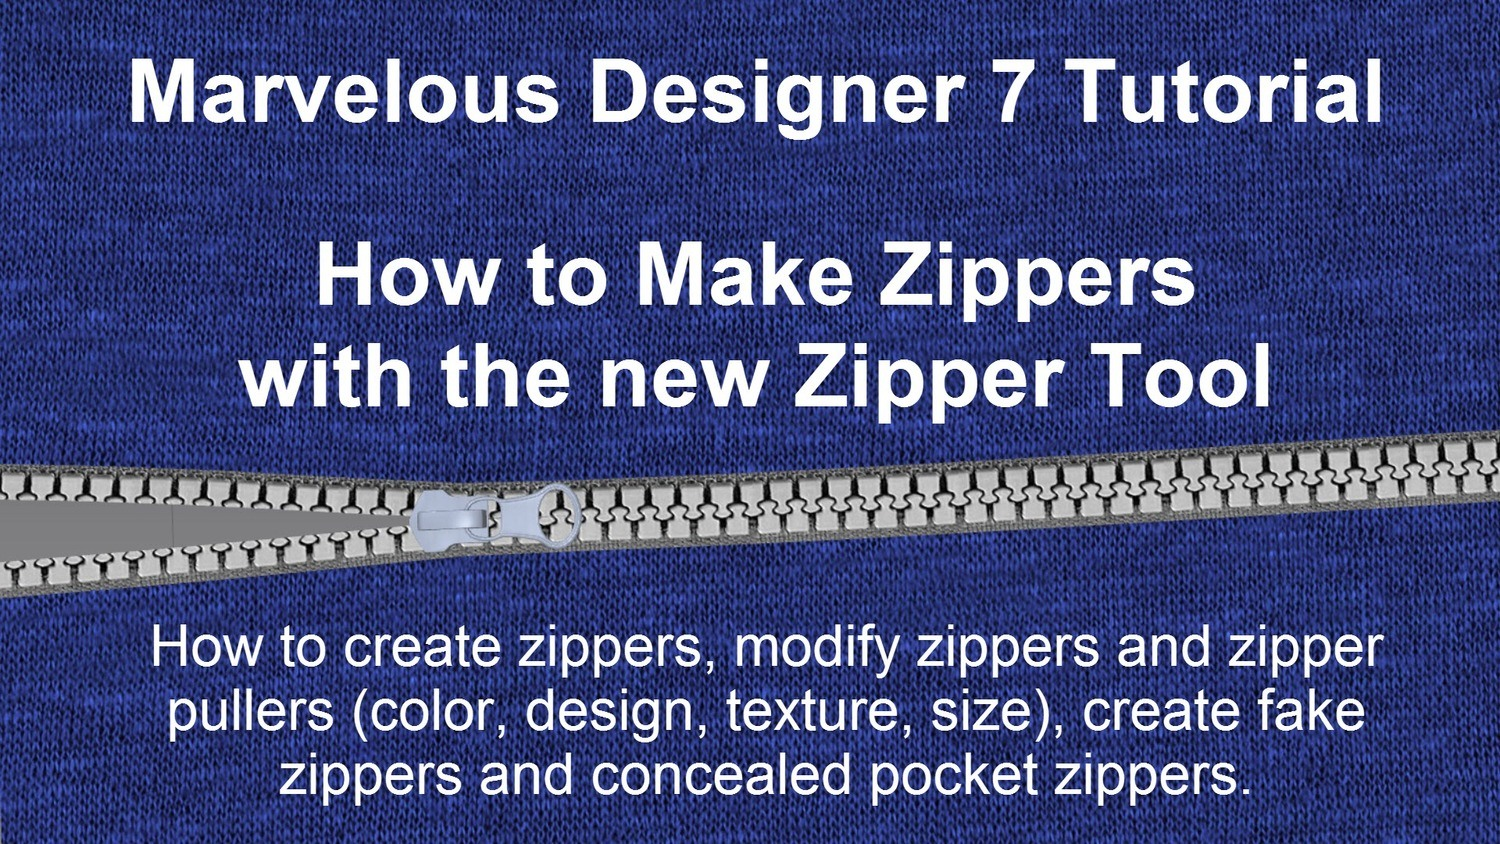 Marvelous Designer 7 Zippers Tutorial Camille Kleinman